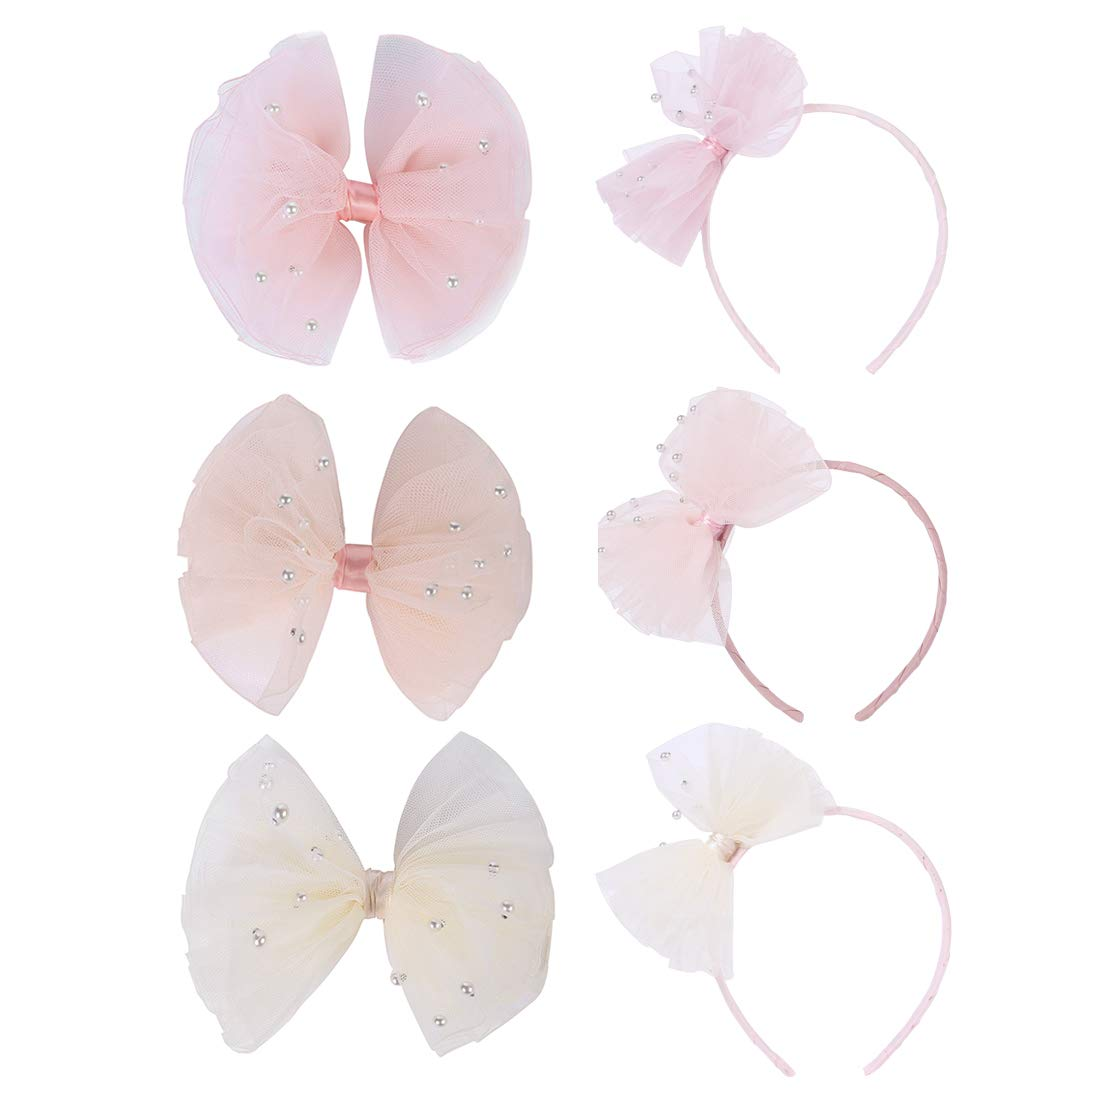 6pcs Girl baby bows hairpin hairband Free shipping / New Manufacturer direct delivery party with Bows Hair Pearls